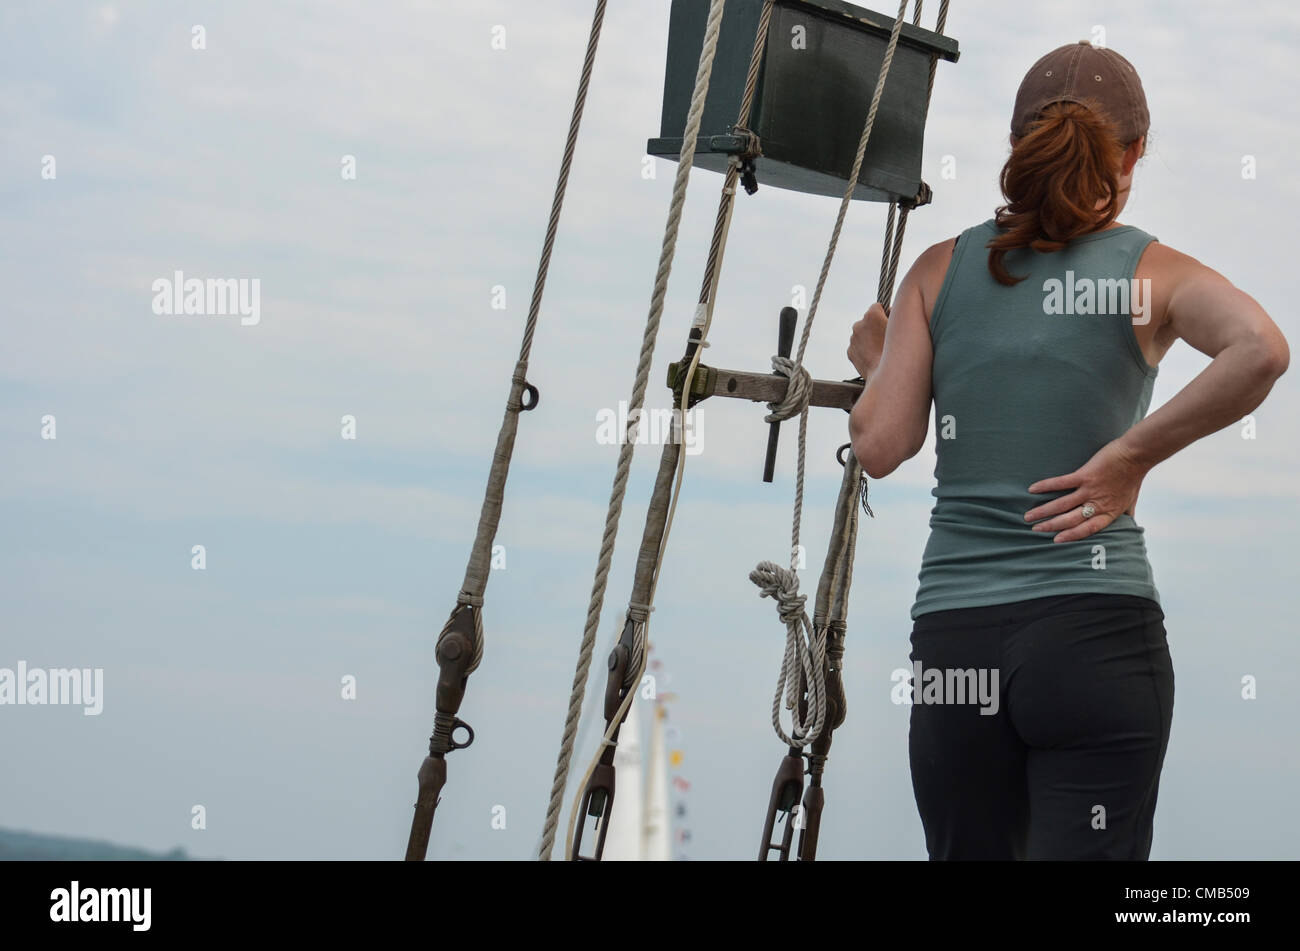 Alyssa Grinberg, from Boston, Massachusetts, a sailor on the crew of the schooner Tyrone, a tall ship from Chatham - Stock Image